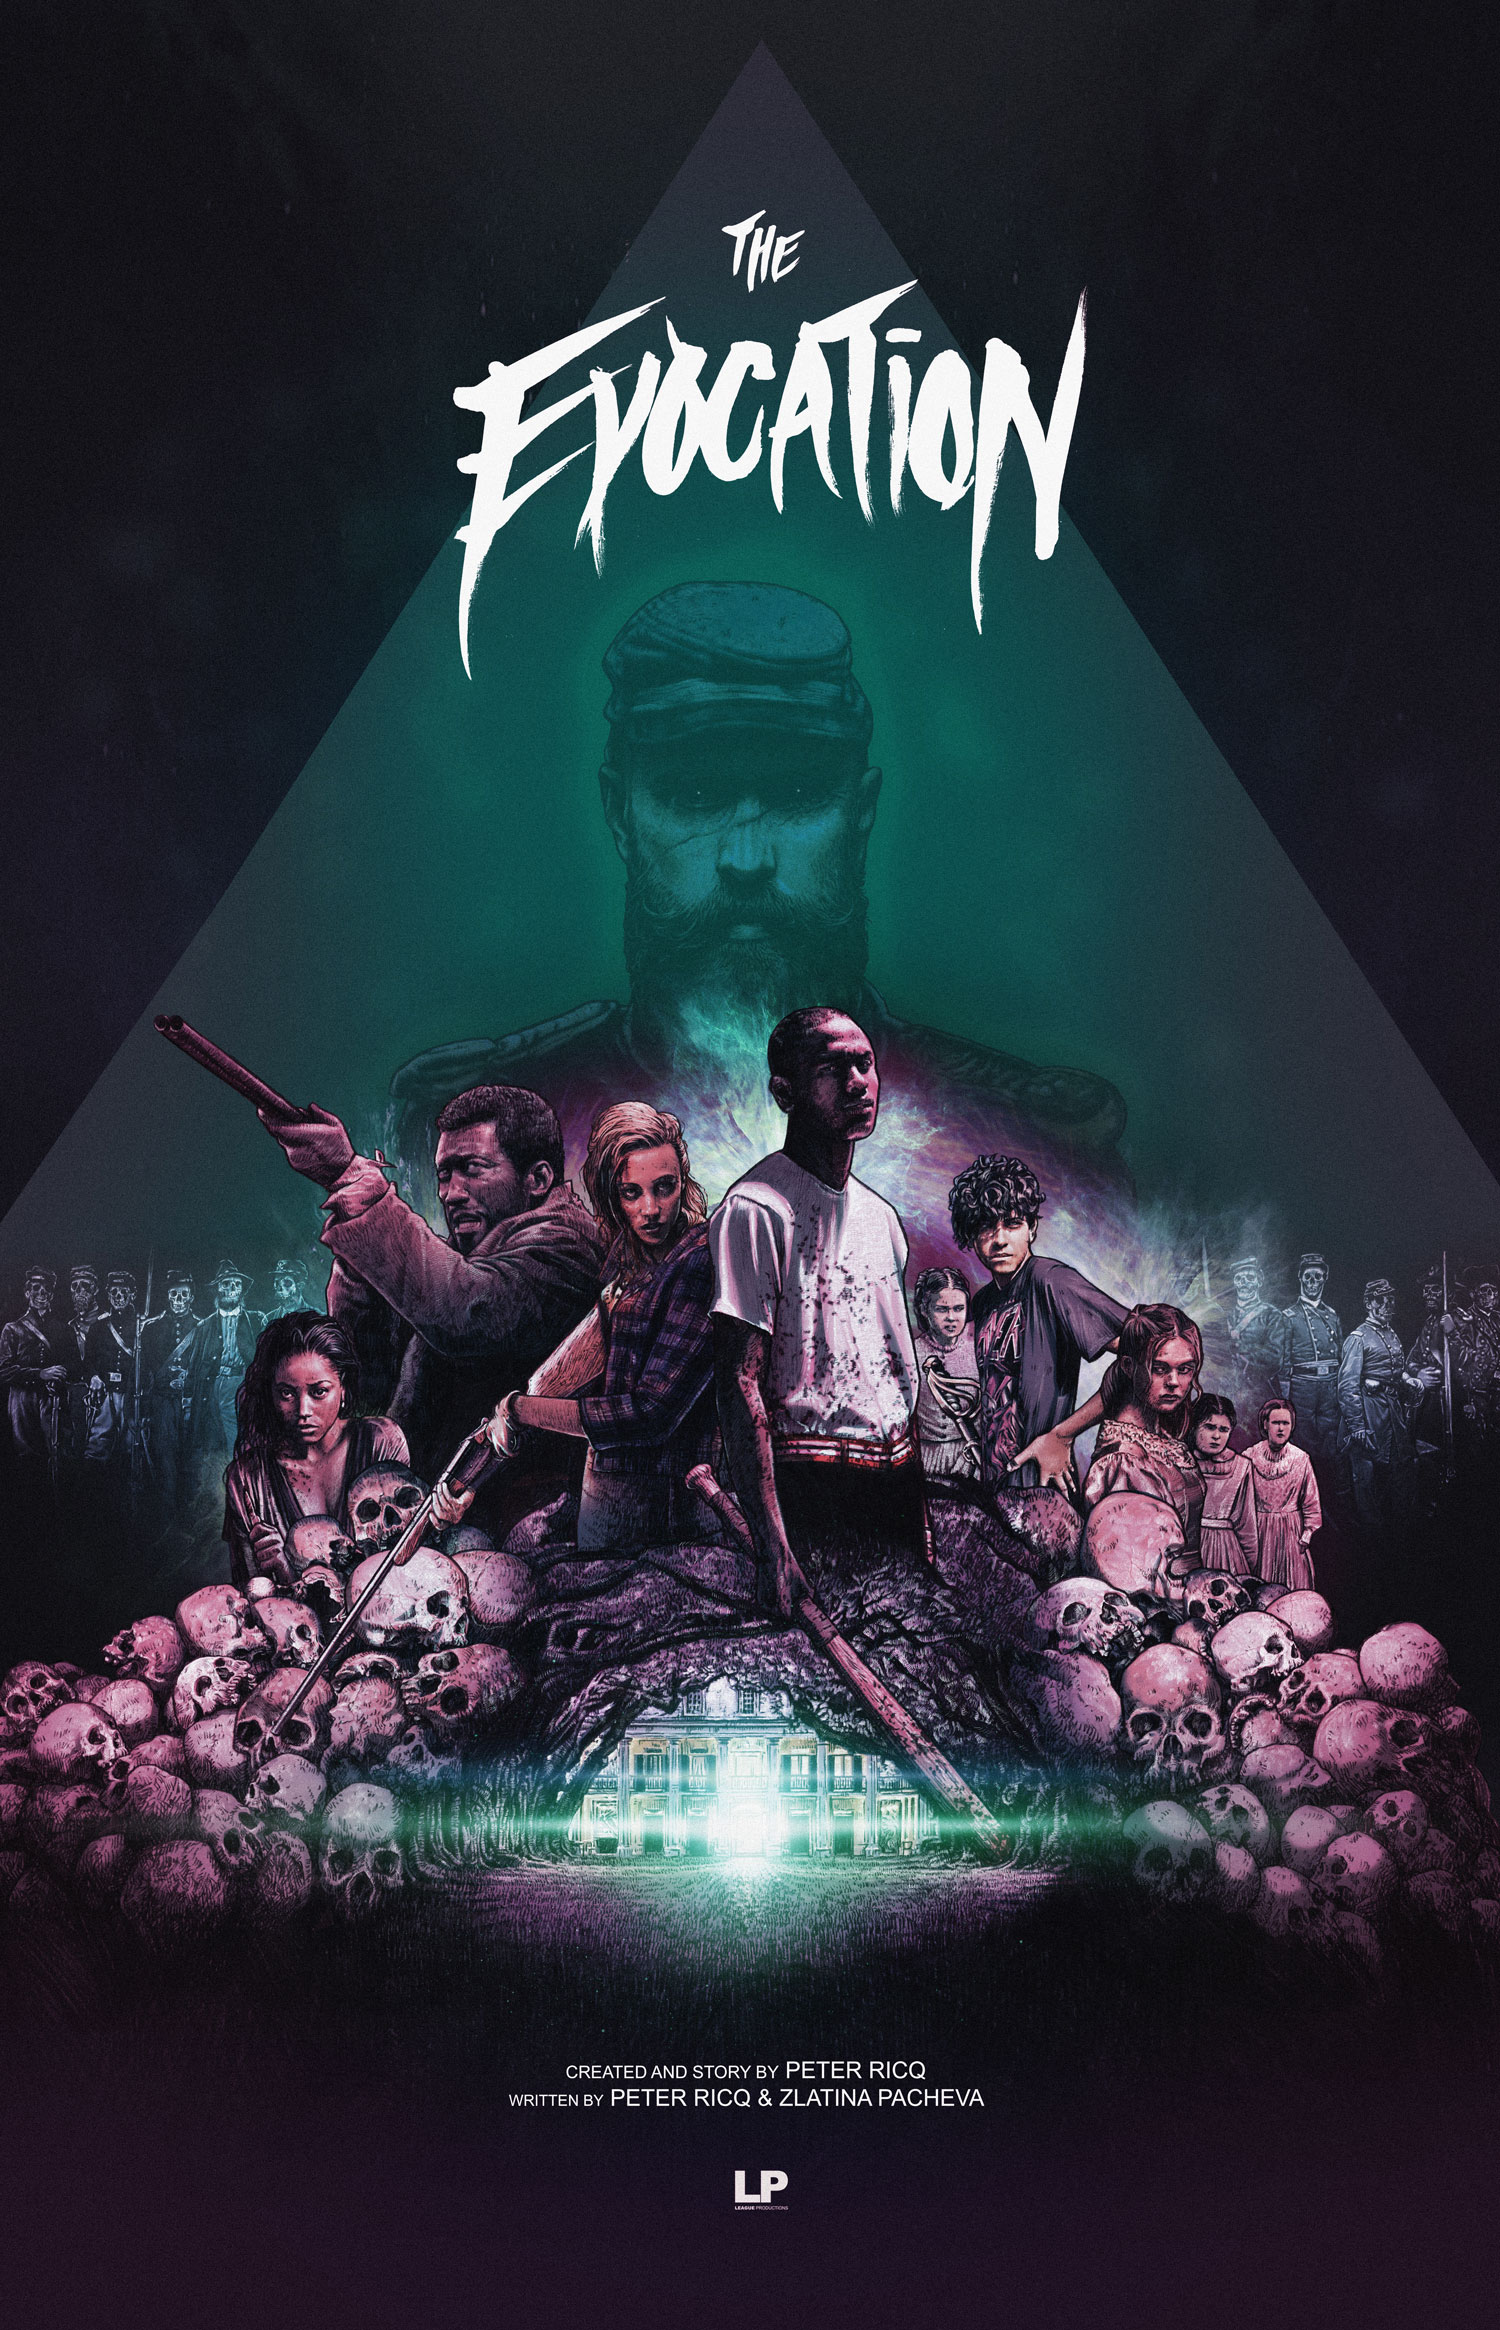 The Evocation - 2018 - Proof of concept poster for a TV series